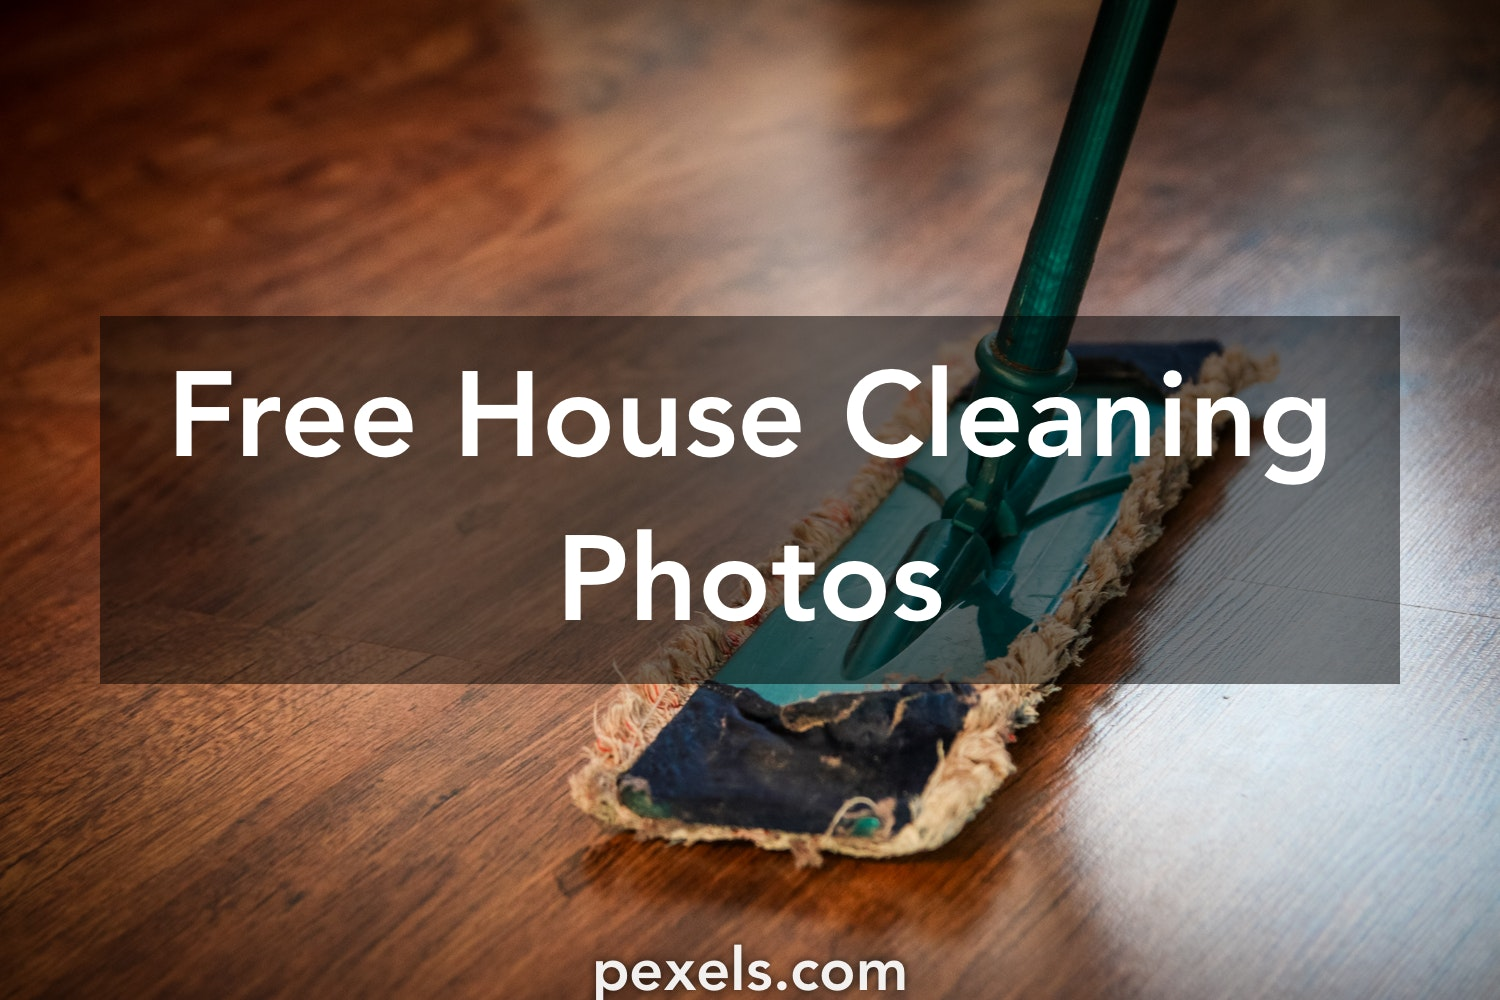 Free stock photos of house cleaning pexels for House cleaning stock photos